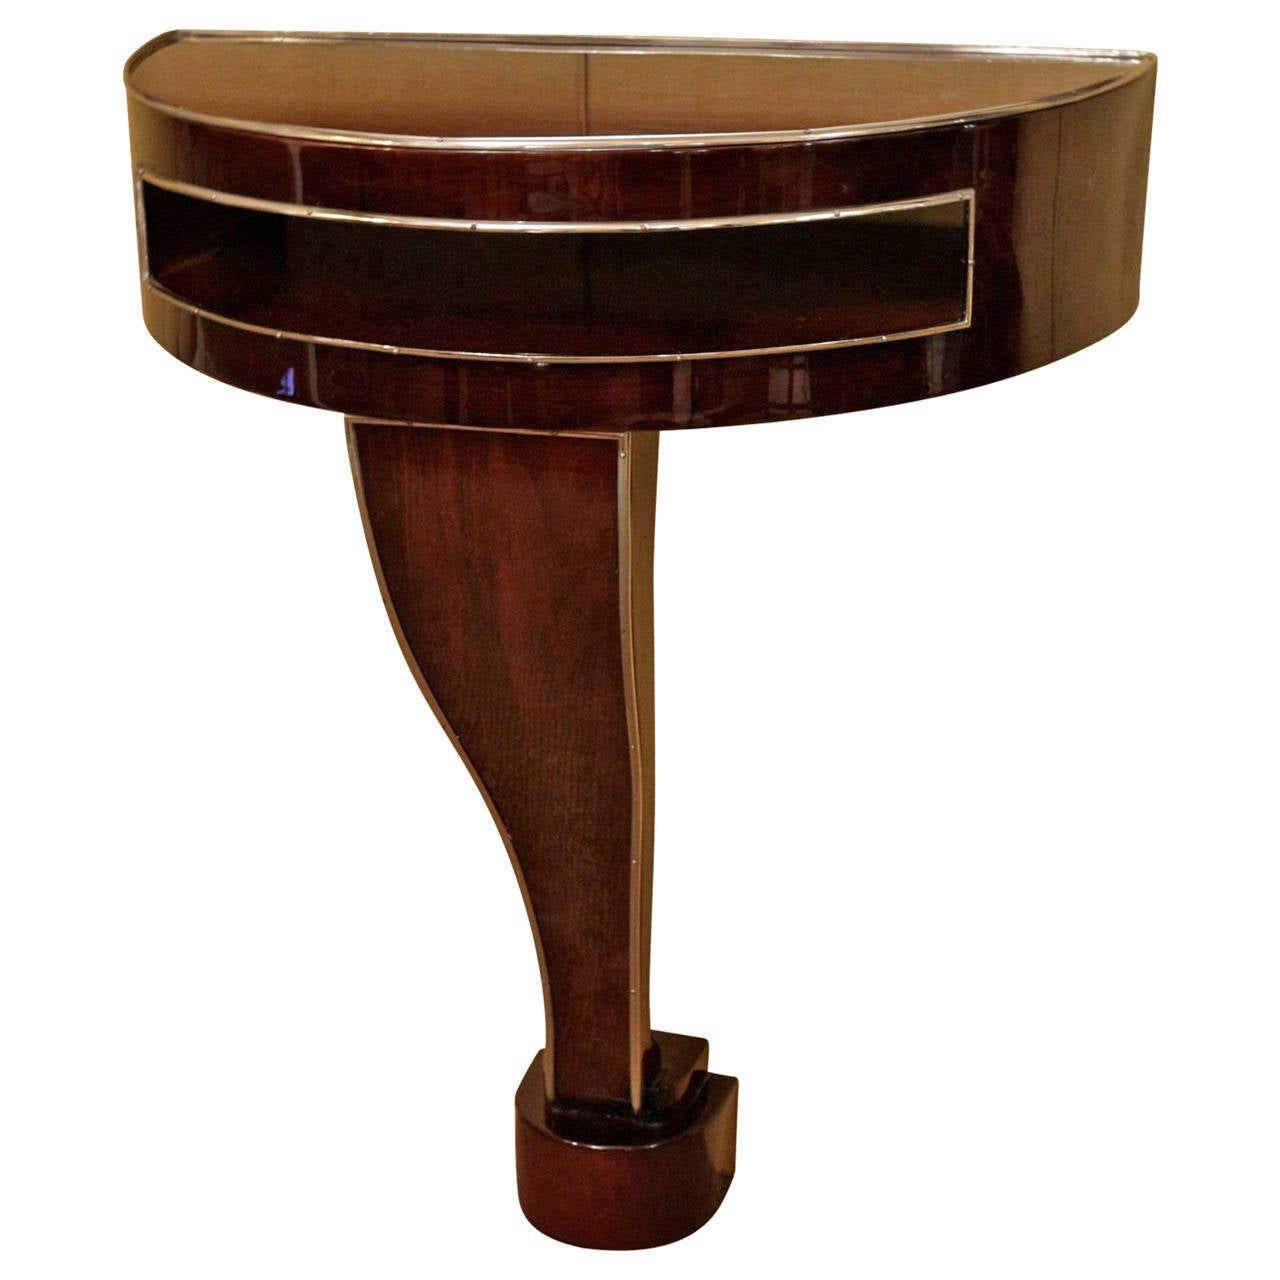 art deco rosewood console table for sale at 1stdibs. Black Bedroom Furniture Sets. Home Design Ideas